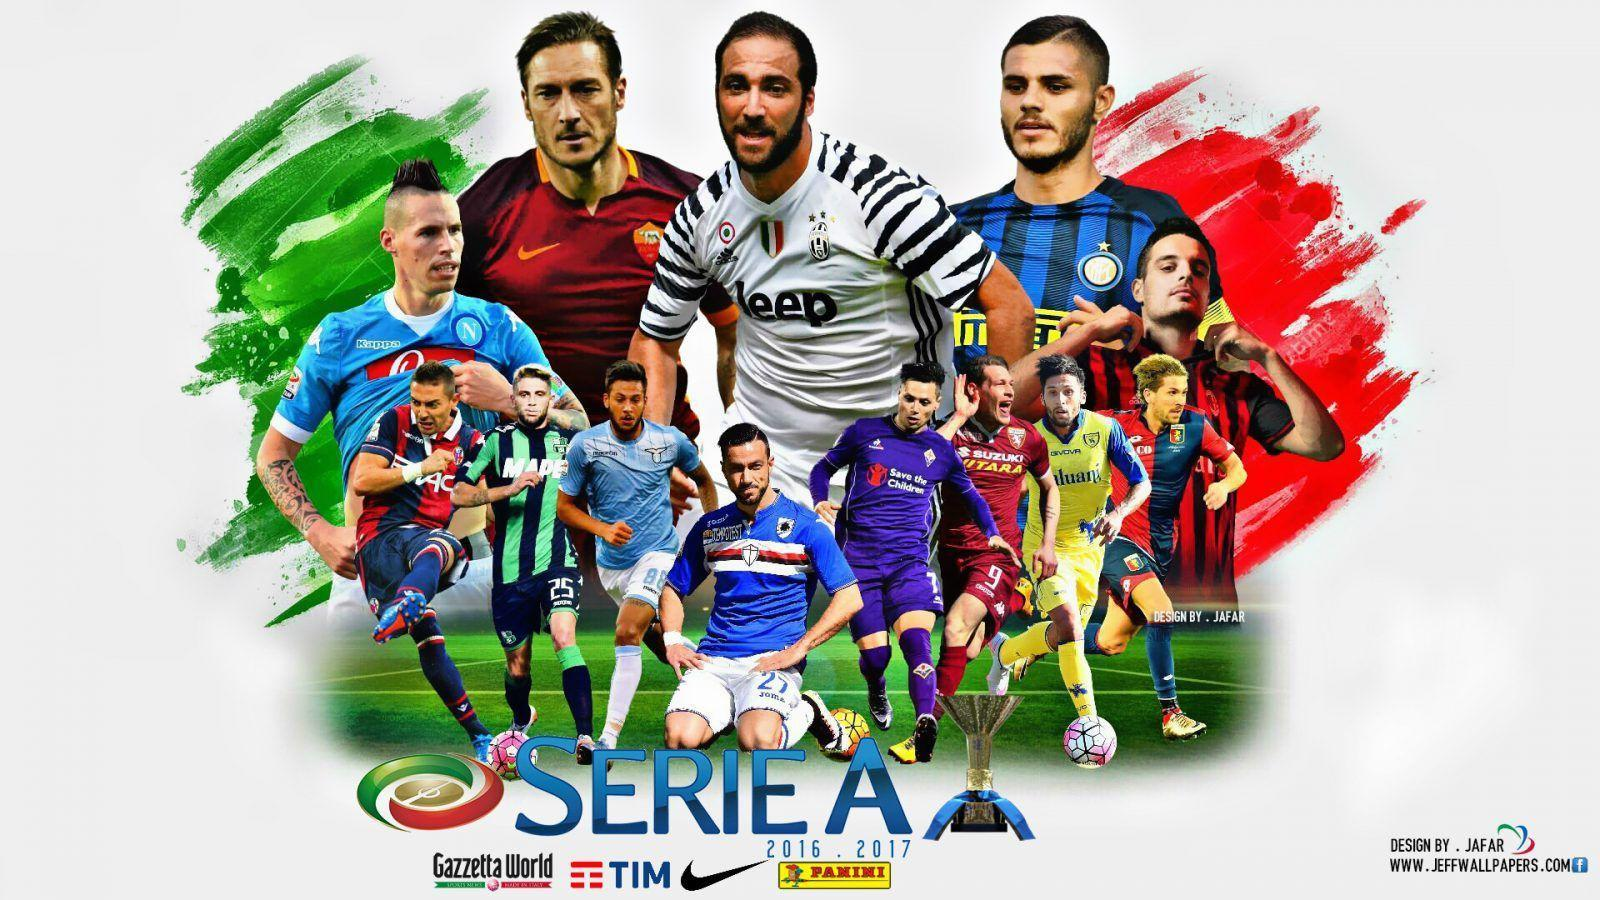 SERIE A 2016 WALLPAPERS